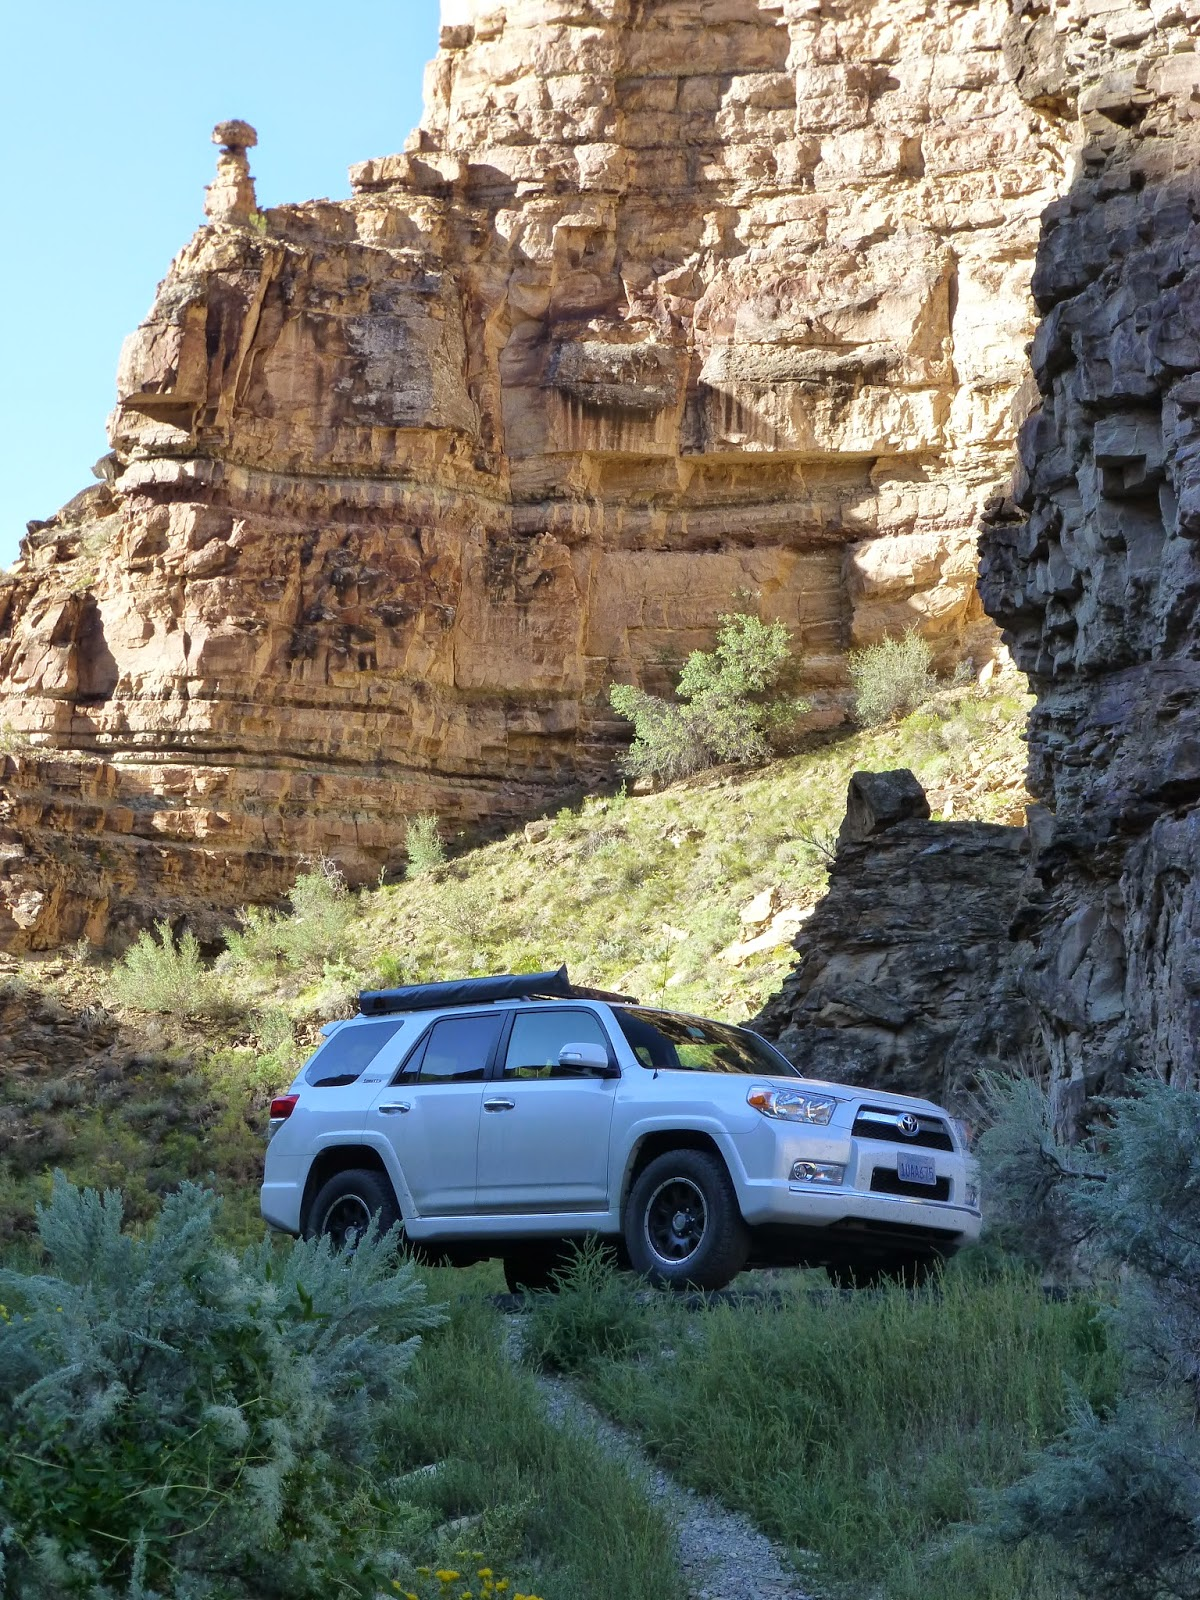 The church of the open road press: the toyota 4 runner (vintage 2012)